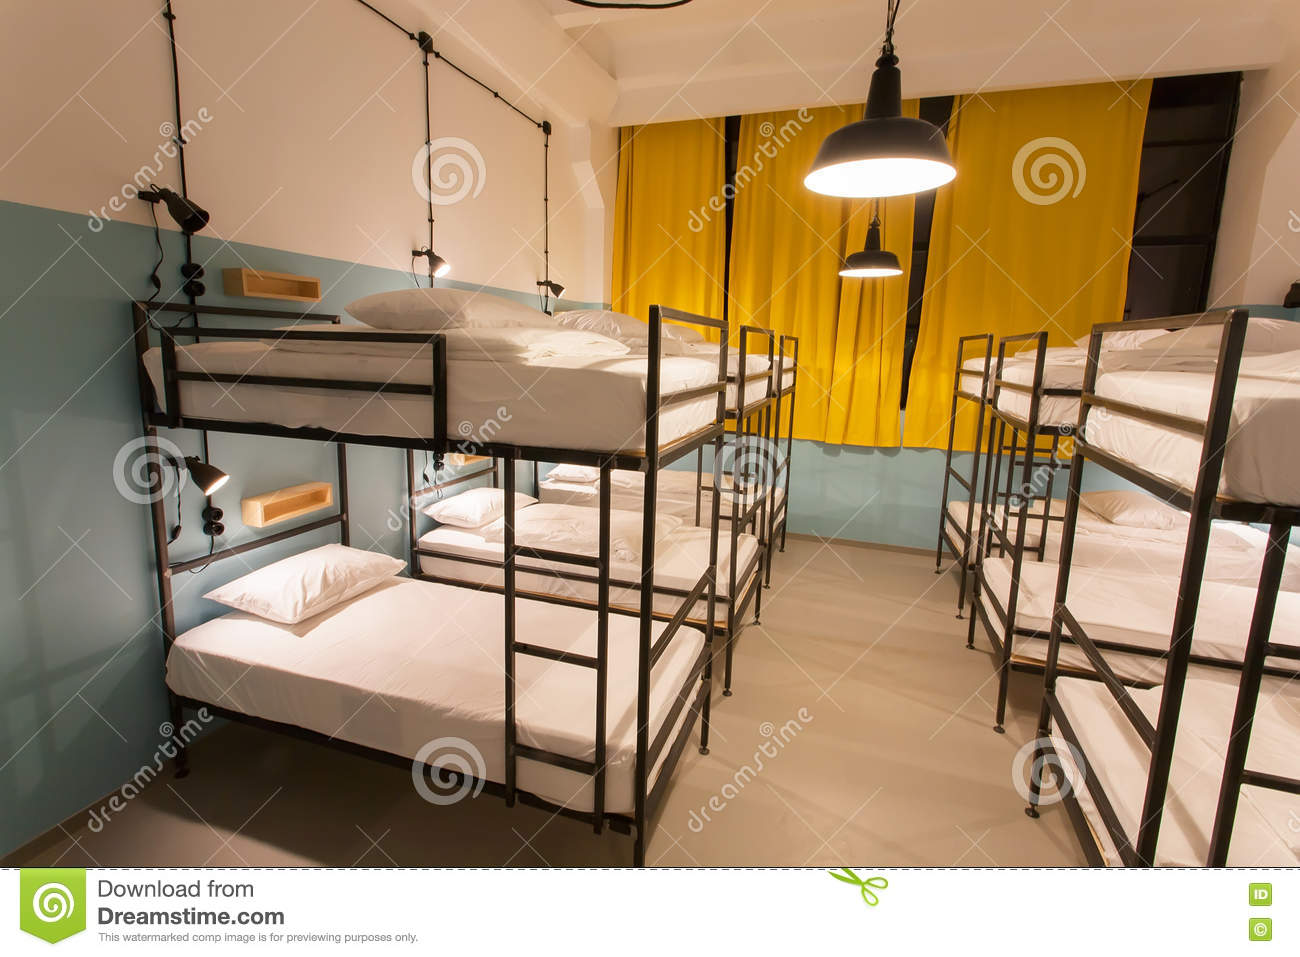 Loft Beds For Youth